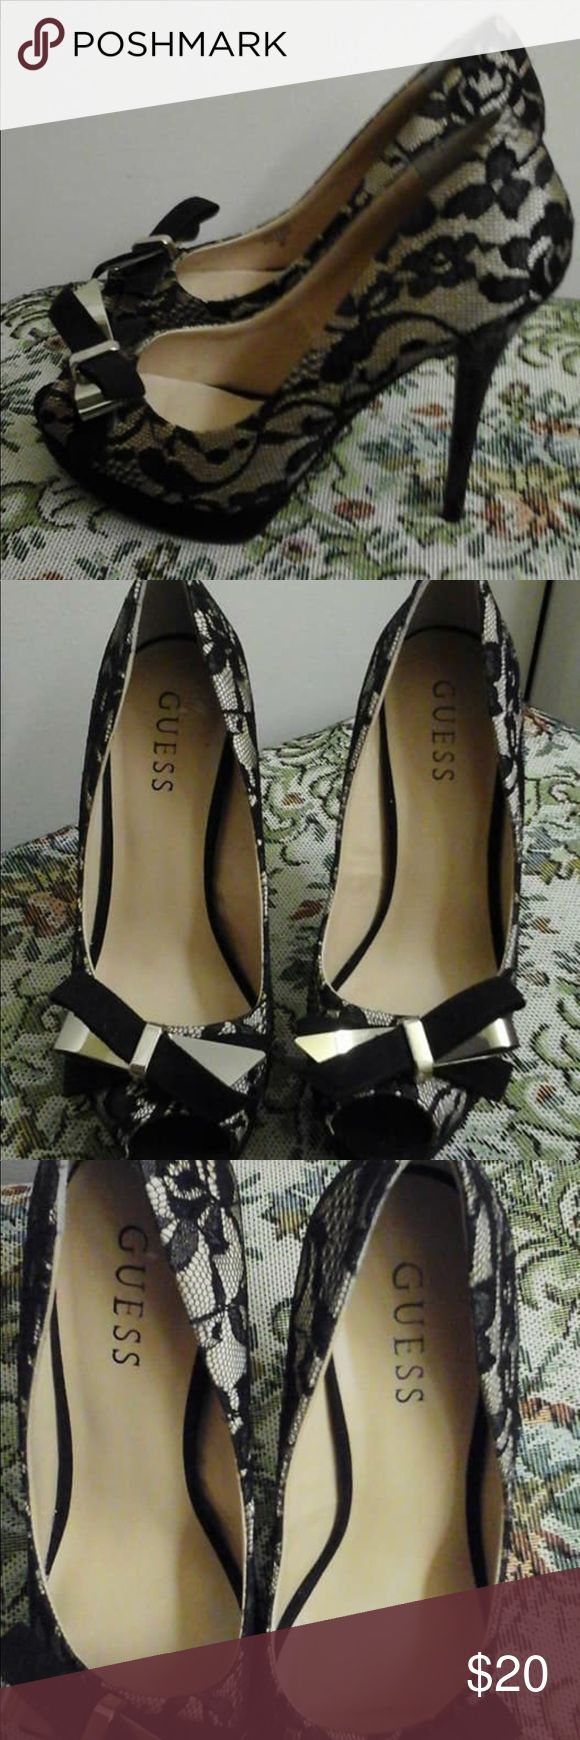 Guess shoes Beautiful Guess shoes. Size 7 1/2 used bat in good condition. Guess Shoes Heels